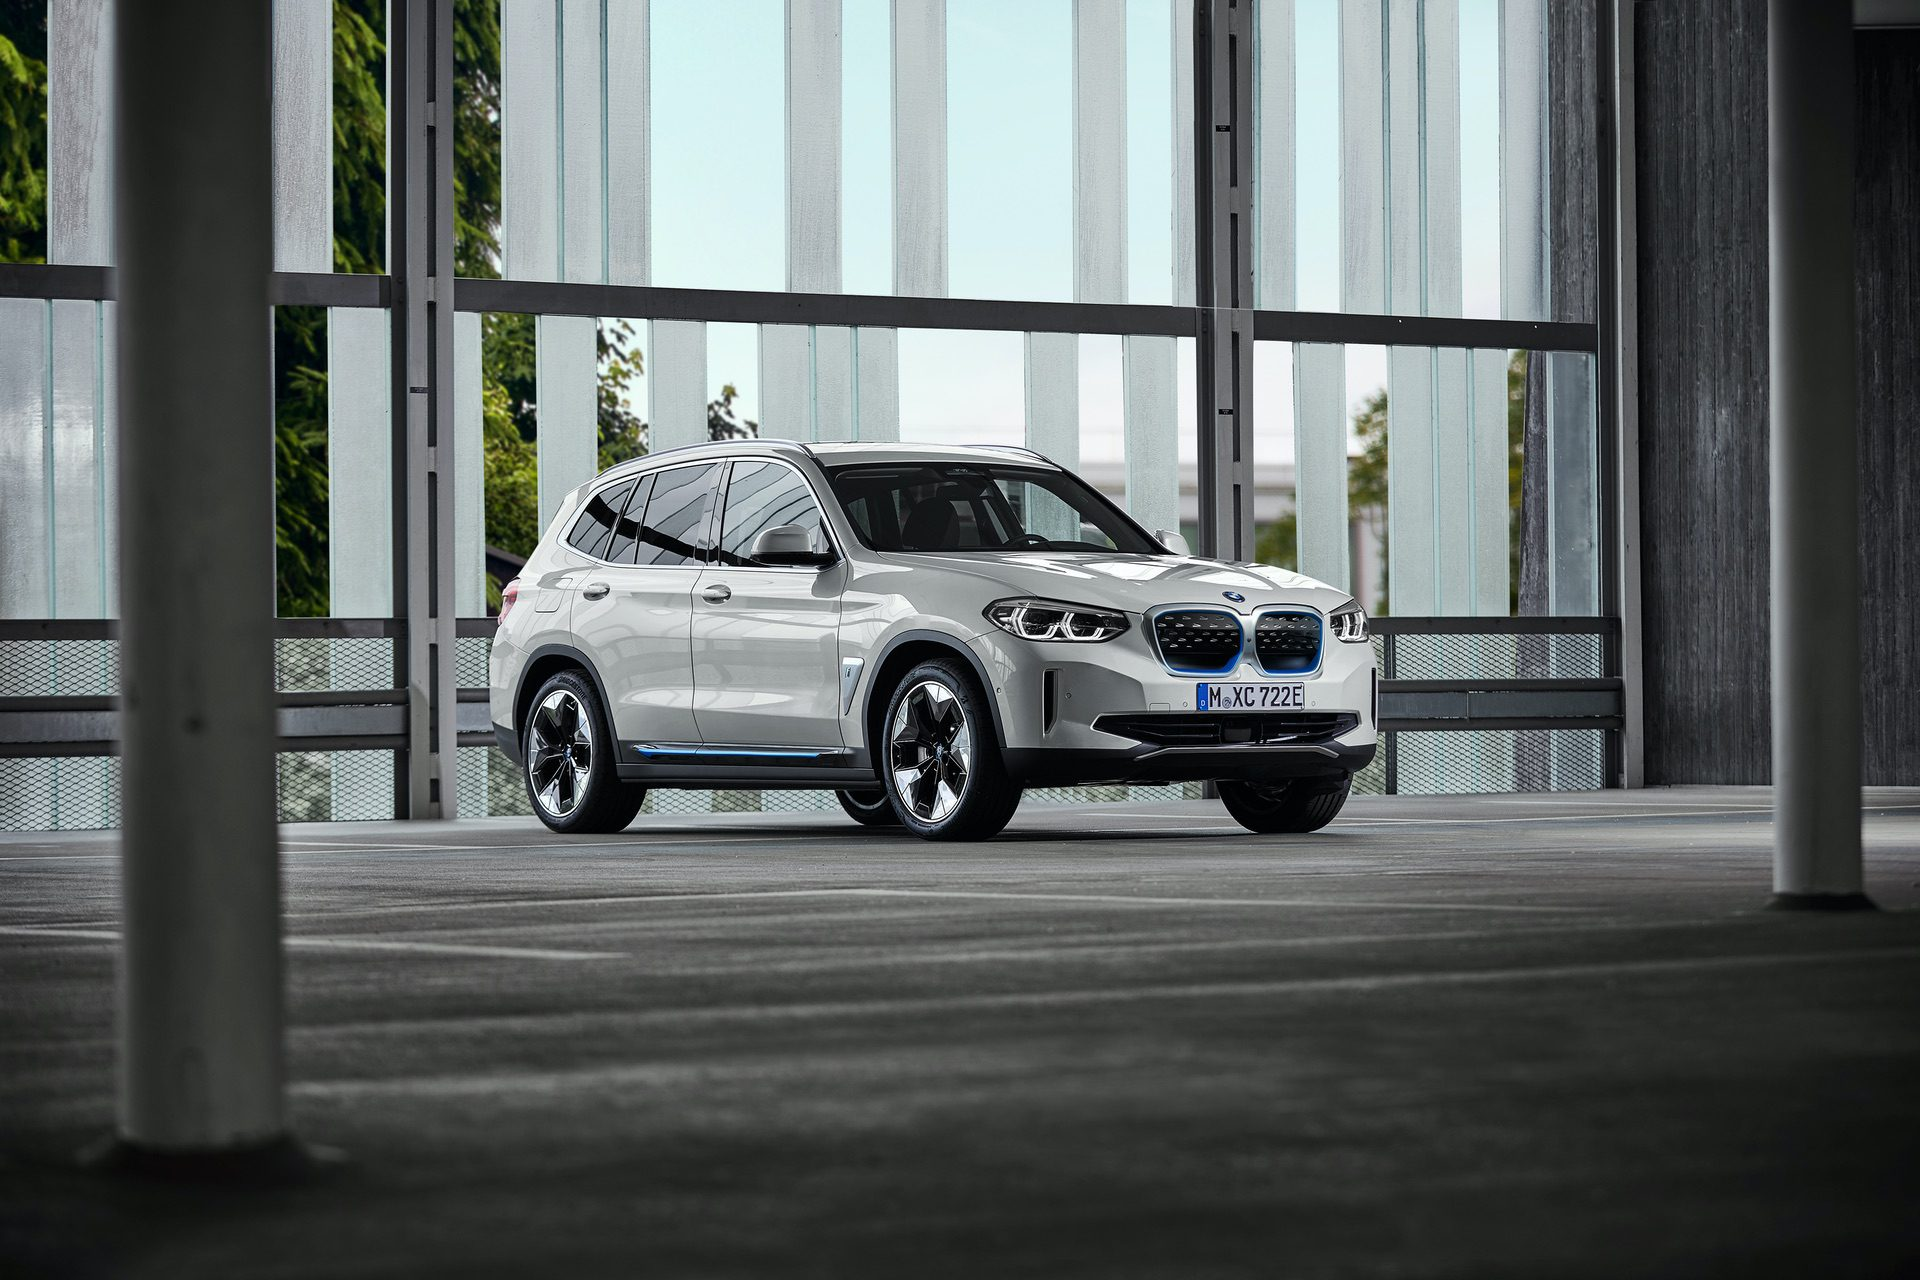 2020 BMW iX3 electric SUV 28